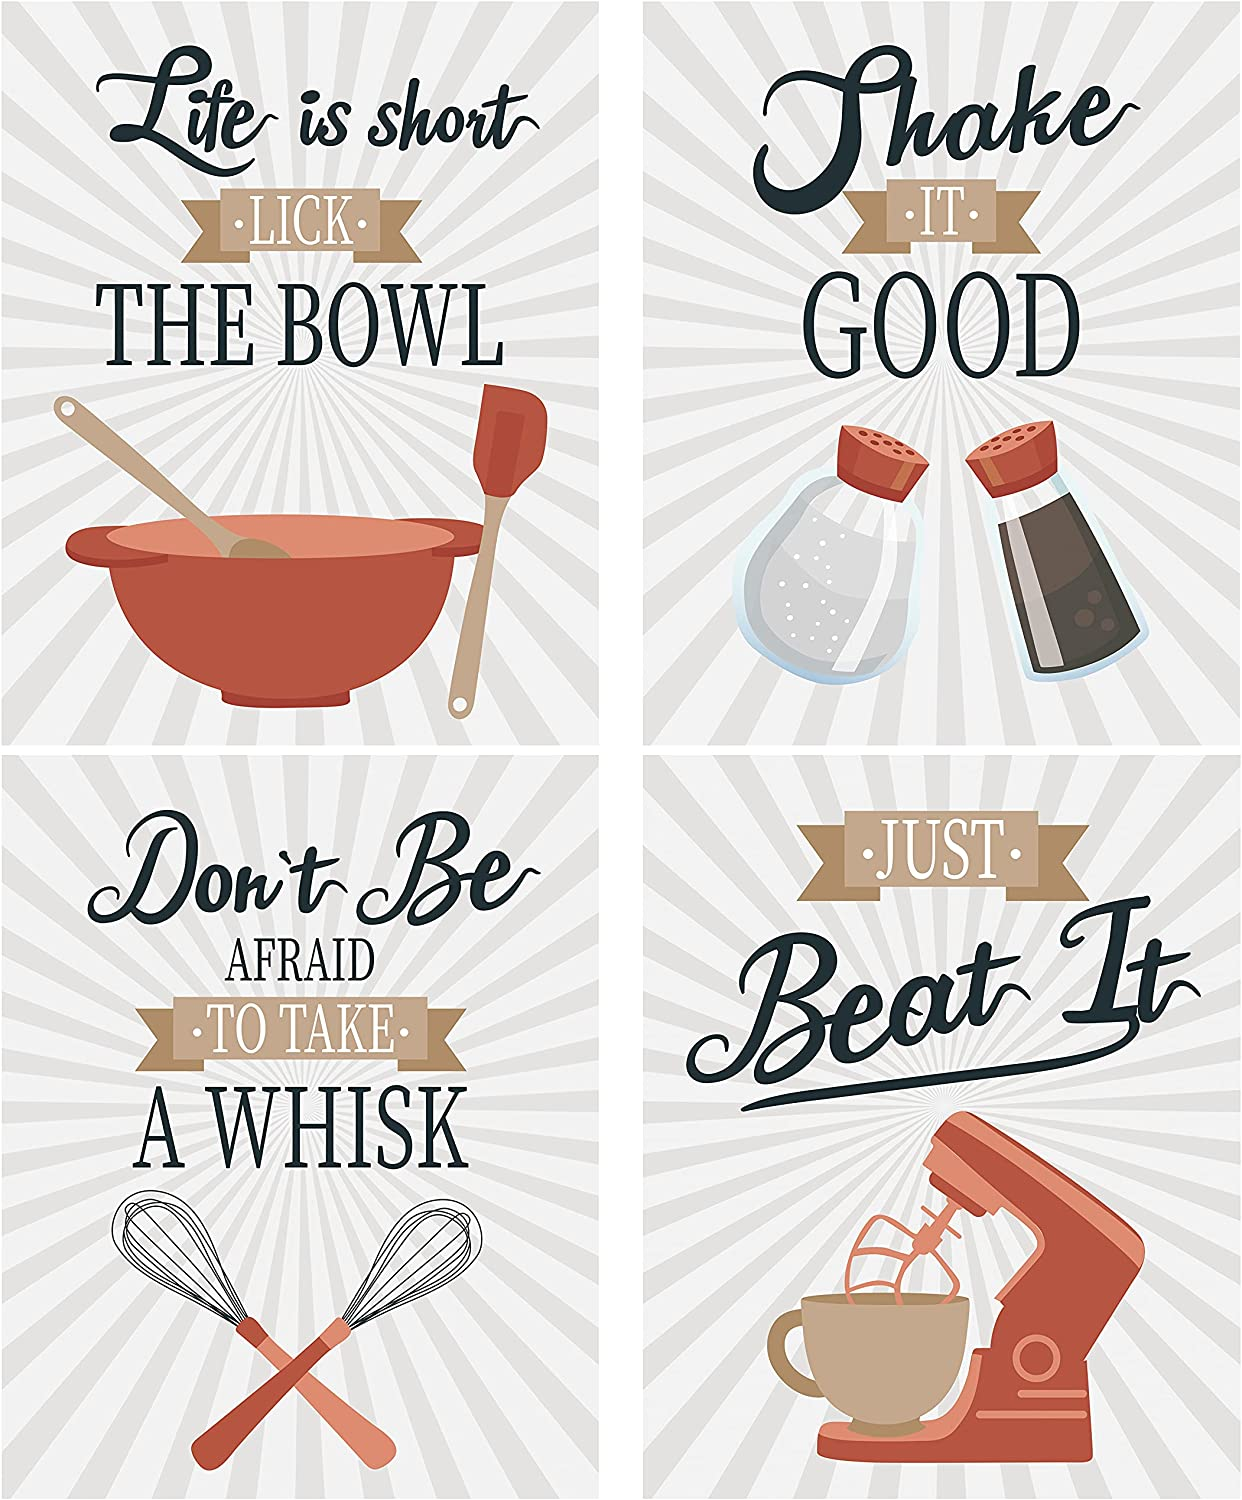 Kitchen Utensil Wall Art Prints Poster Decor - Set of 4 for Dining Room Contemporary Cafe Restaurant Home Apartment Housewarming Gift Rustic Modern Farmhouse Country Decor (8x10 UNFRAMED)